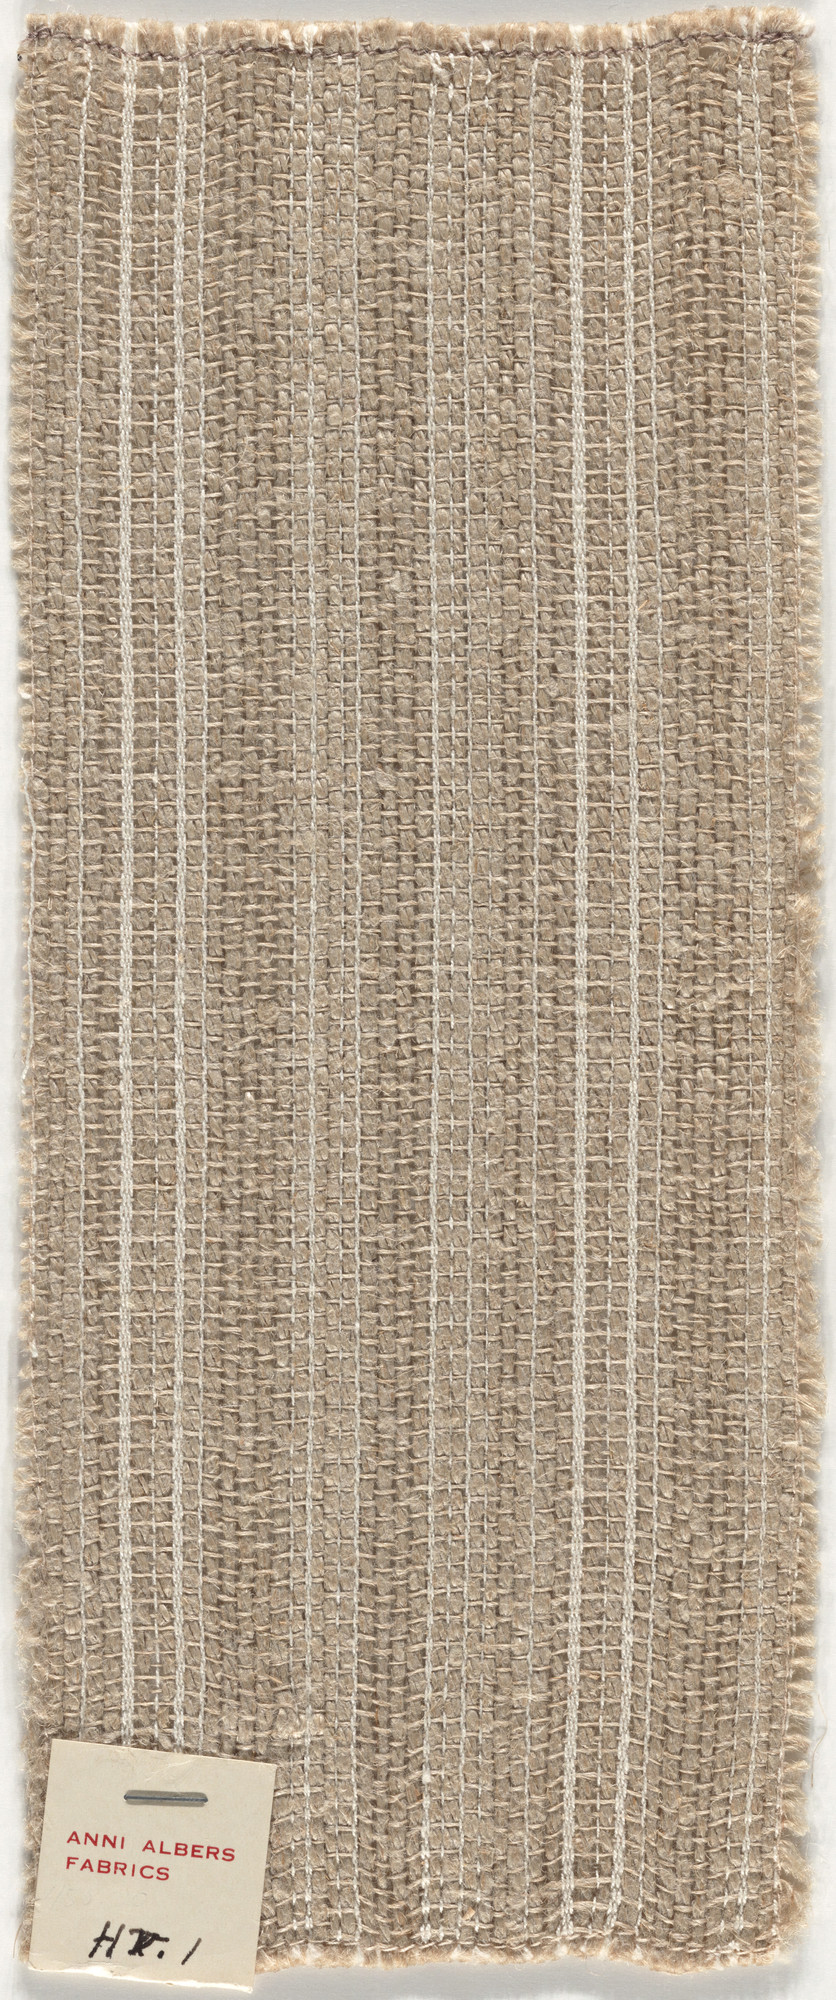 Anni Albers. Fabric Sample. After 1933